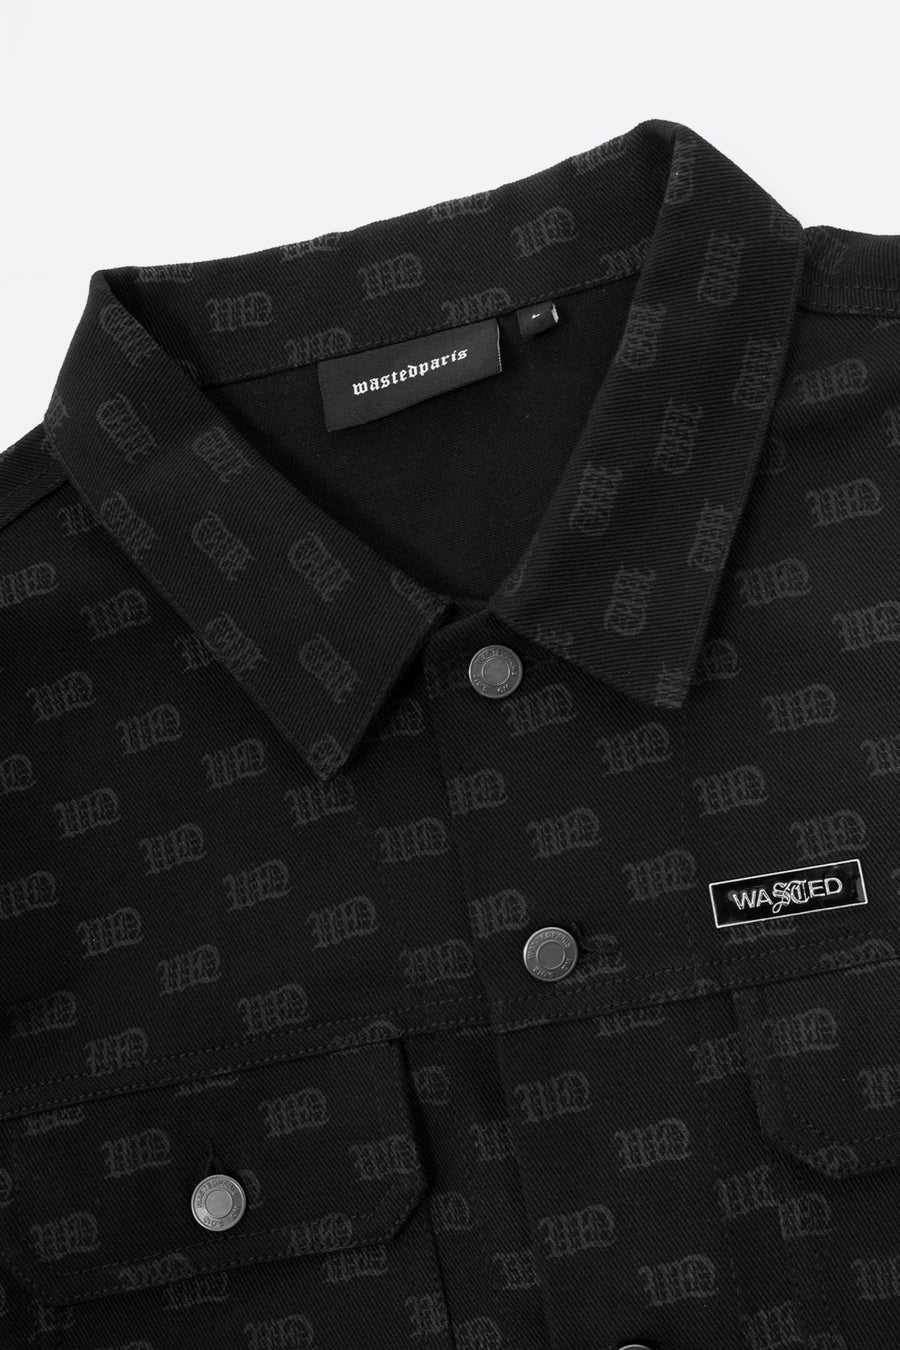 Veste Pulp Monogram - WASTED PARIS